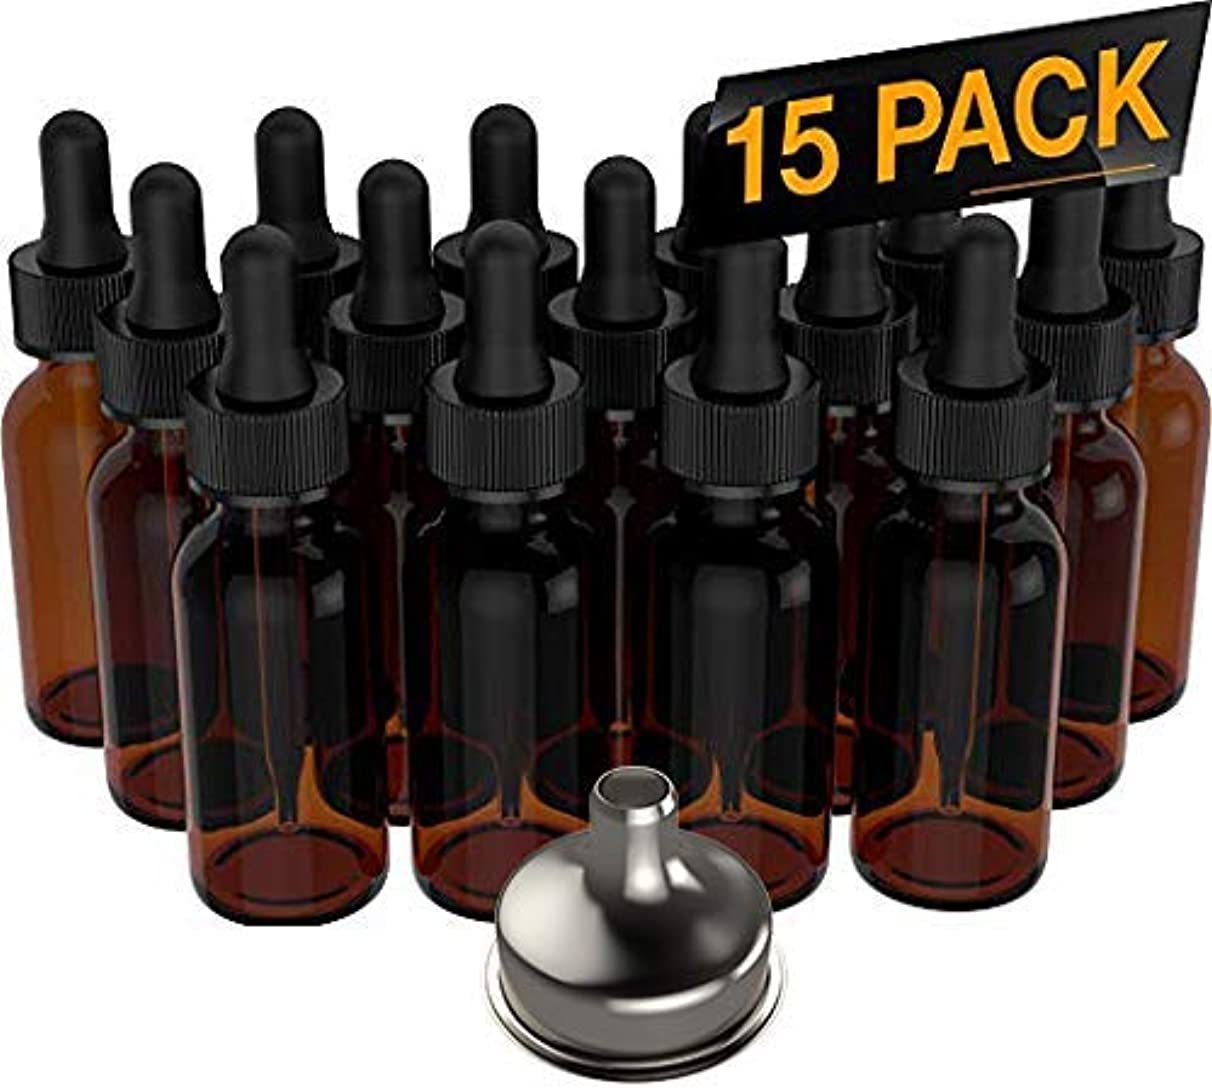 見込み孤独なボリューム15 Pack Essential Oil Bottles - Round Boston Empty Refillable Amber Bottle with Glass Dropper [ Free Stainless...